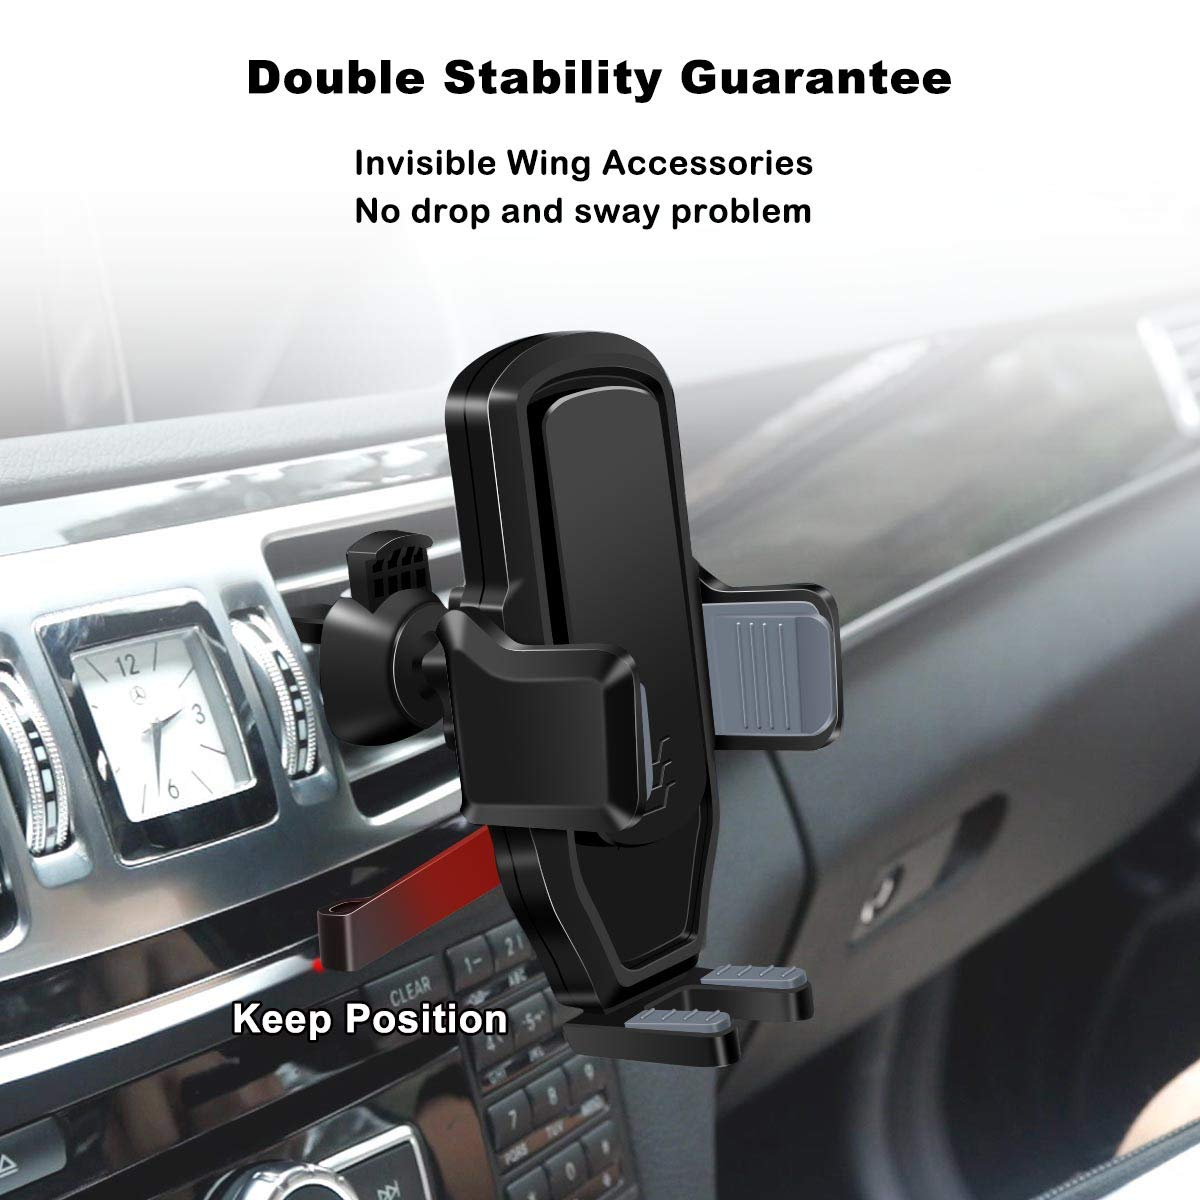 Easy One-Hand Operating Car Phone Holder,Automatic Locking System Universal Car Phone Mount,Gravity Automatic Cell Phone Car Holder Apply for 3-6 inch Screen Smartphone//Other Devices-Black Zeuste 4350465769